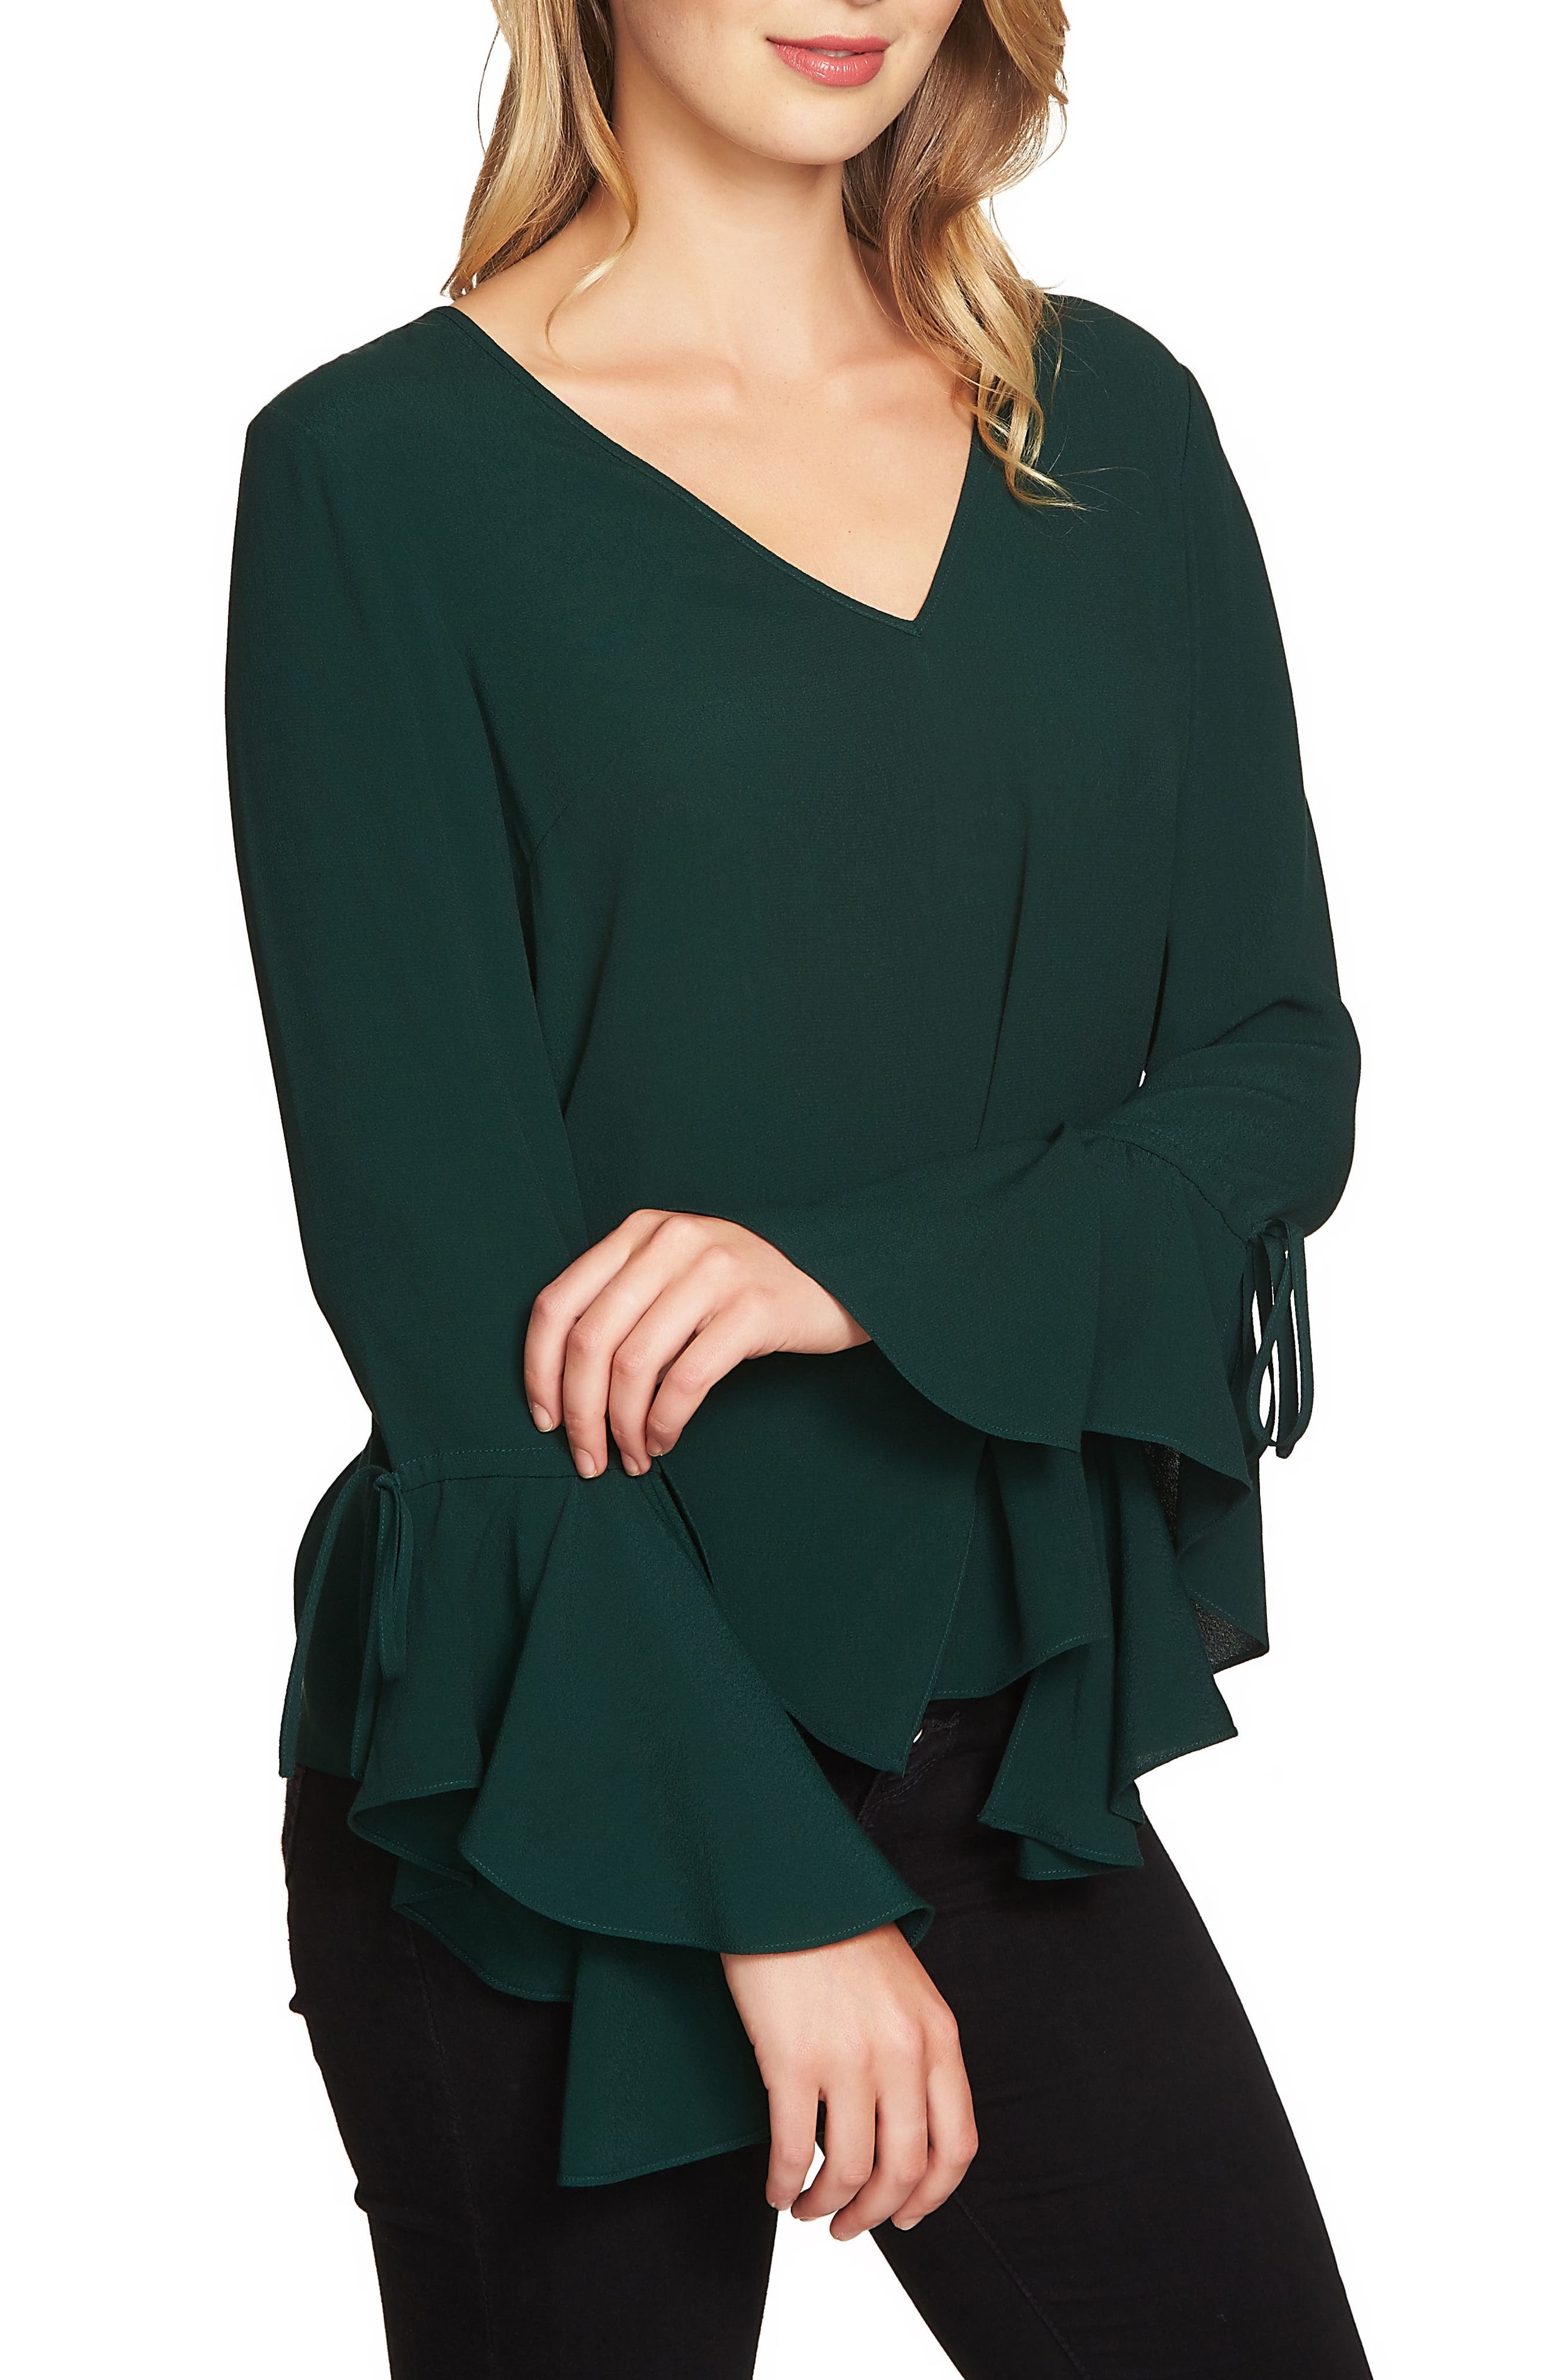 Cascade Sleeve Blouse,                             Alternate thumbnail 3, color,                             Jasper Green